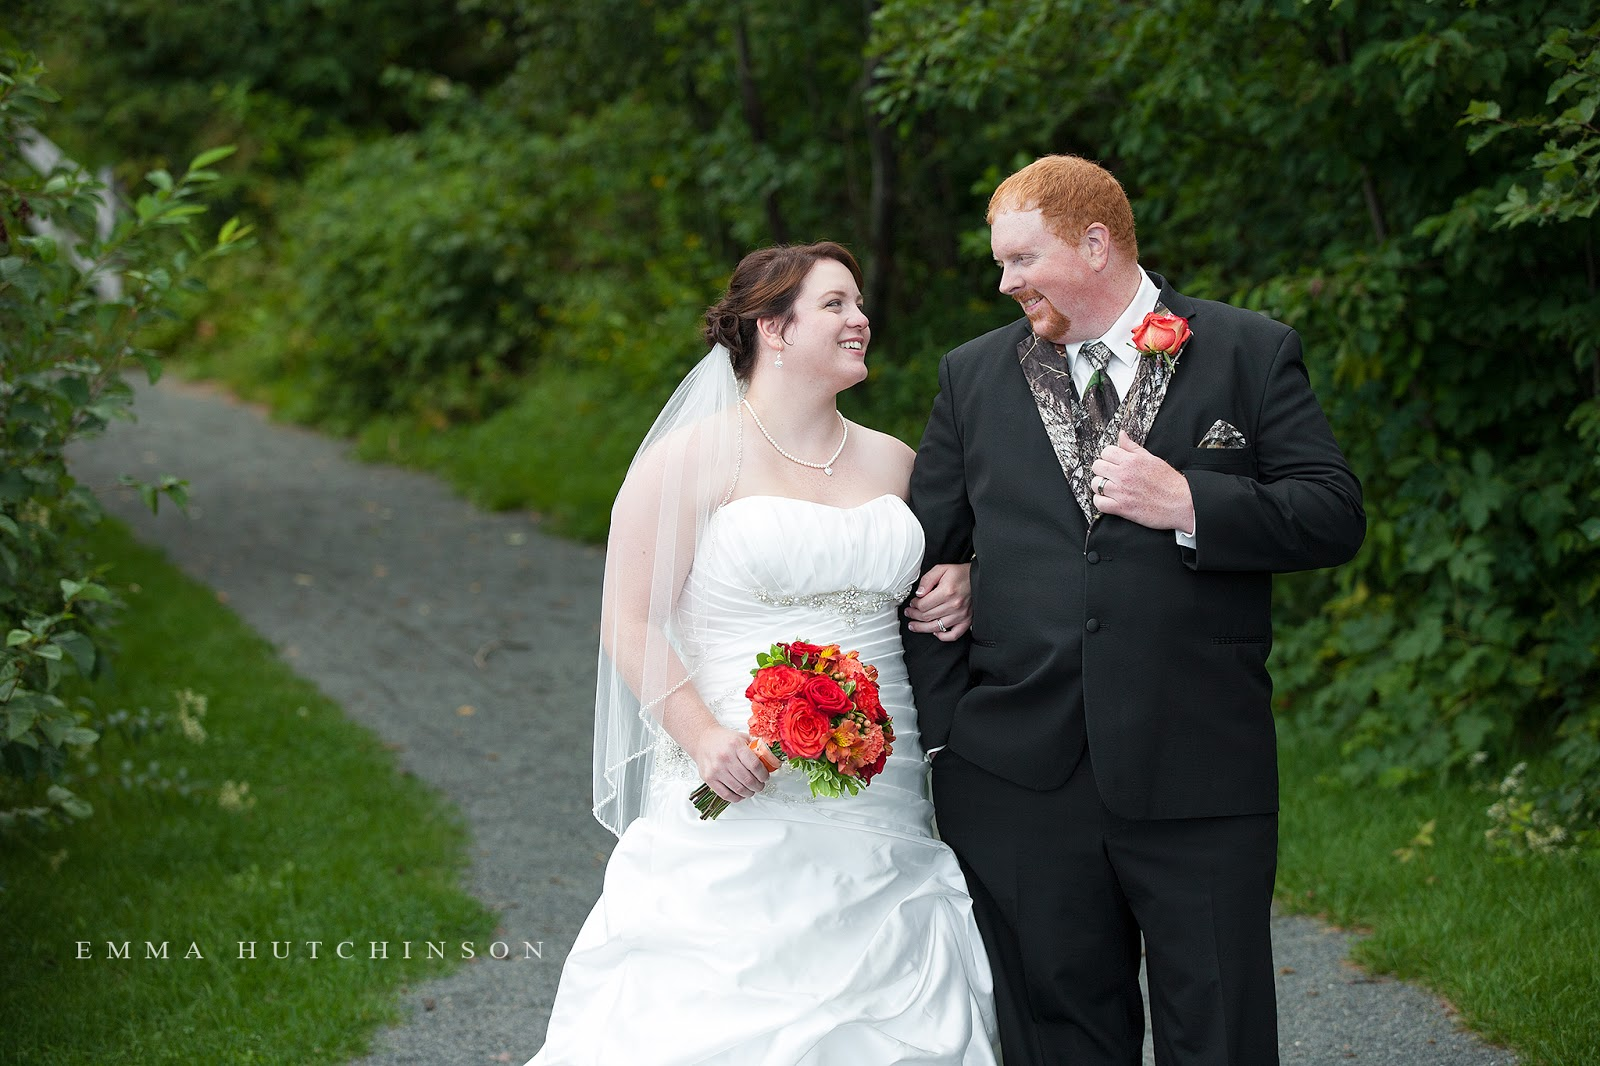 Emma Hutchinson photographs weddings at Gorge Park In Grand Falls Windsor